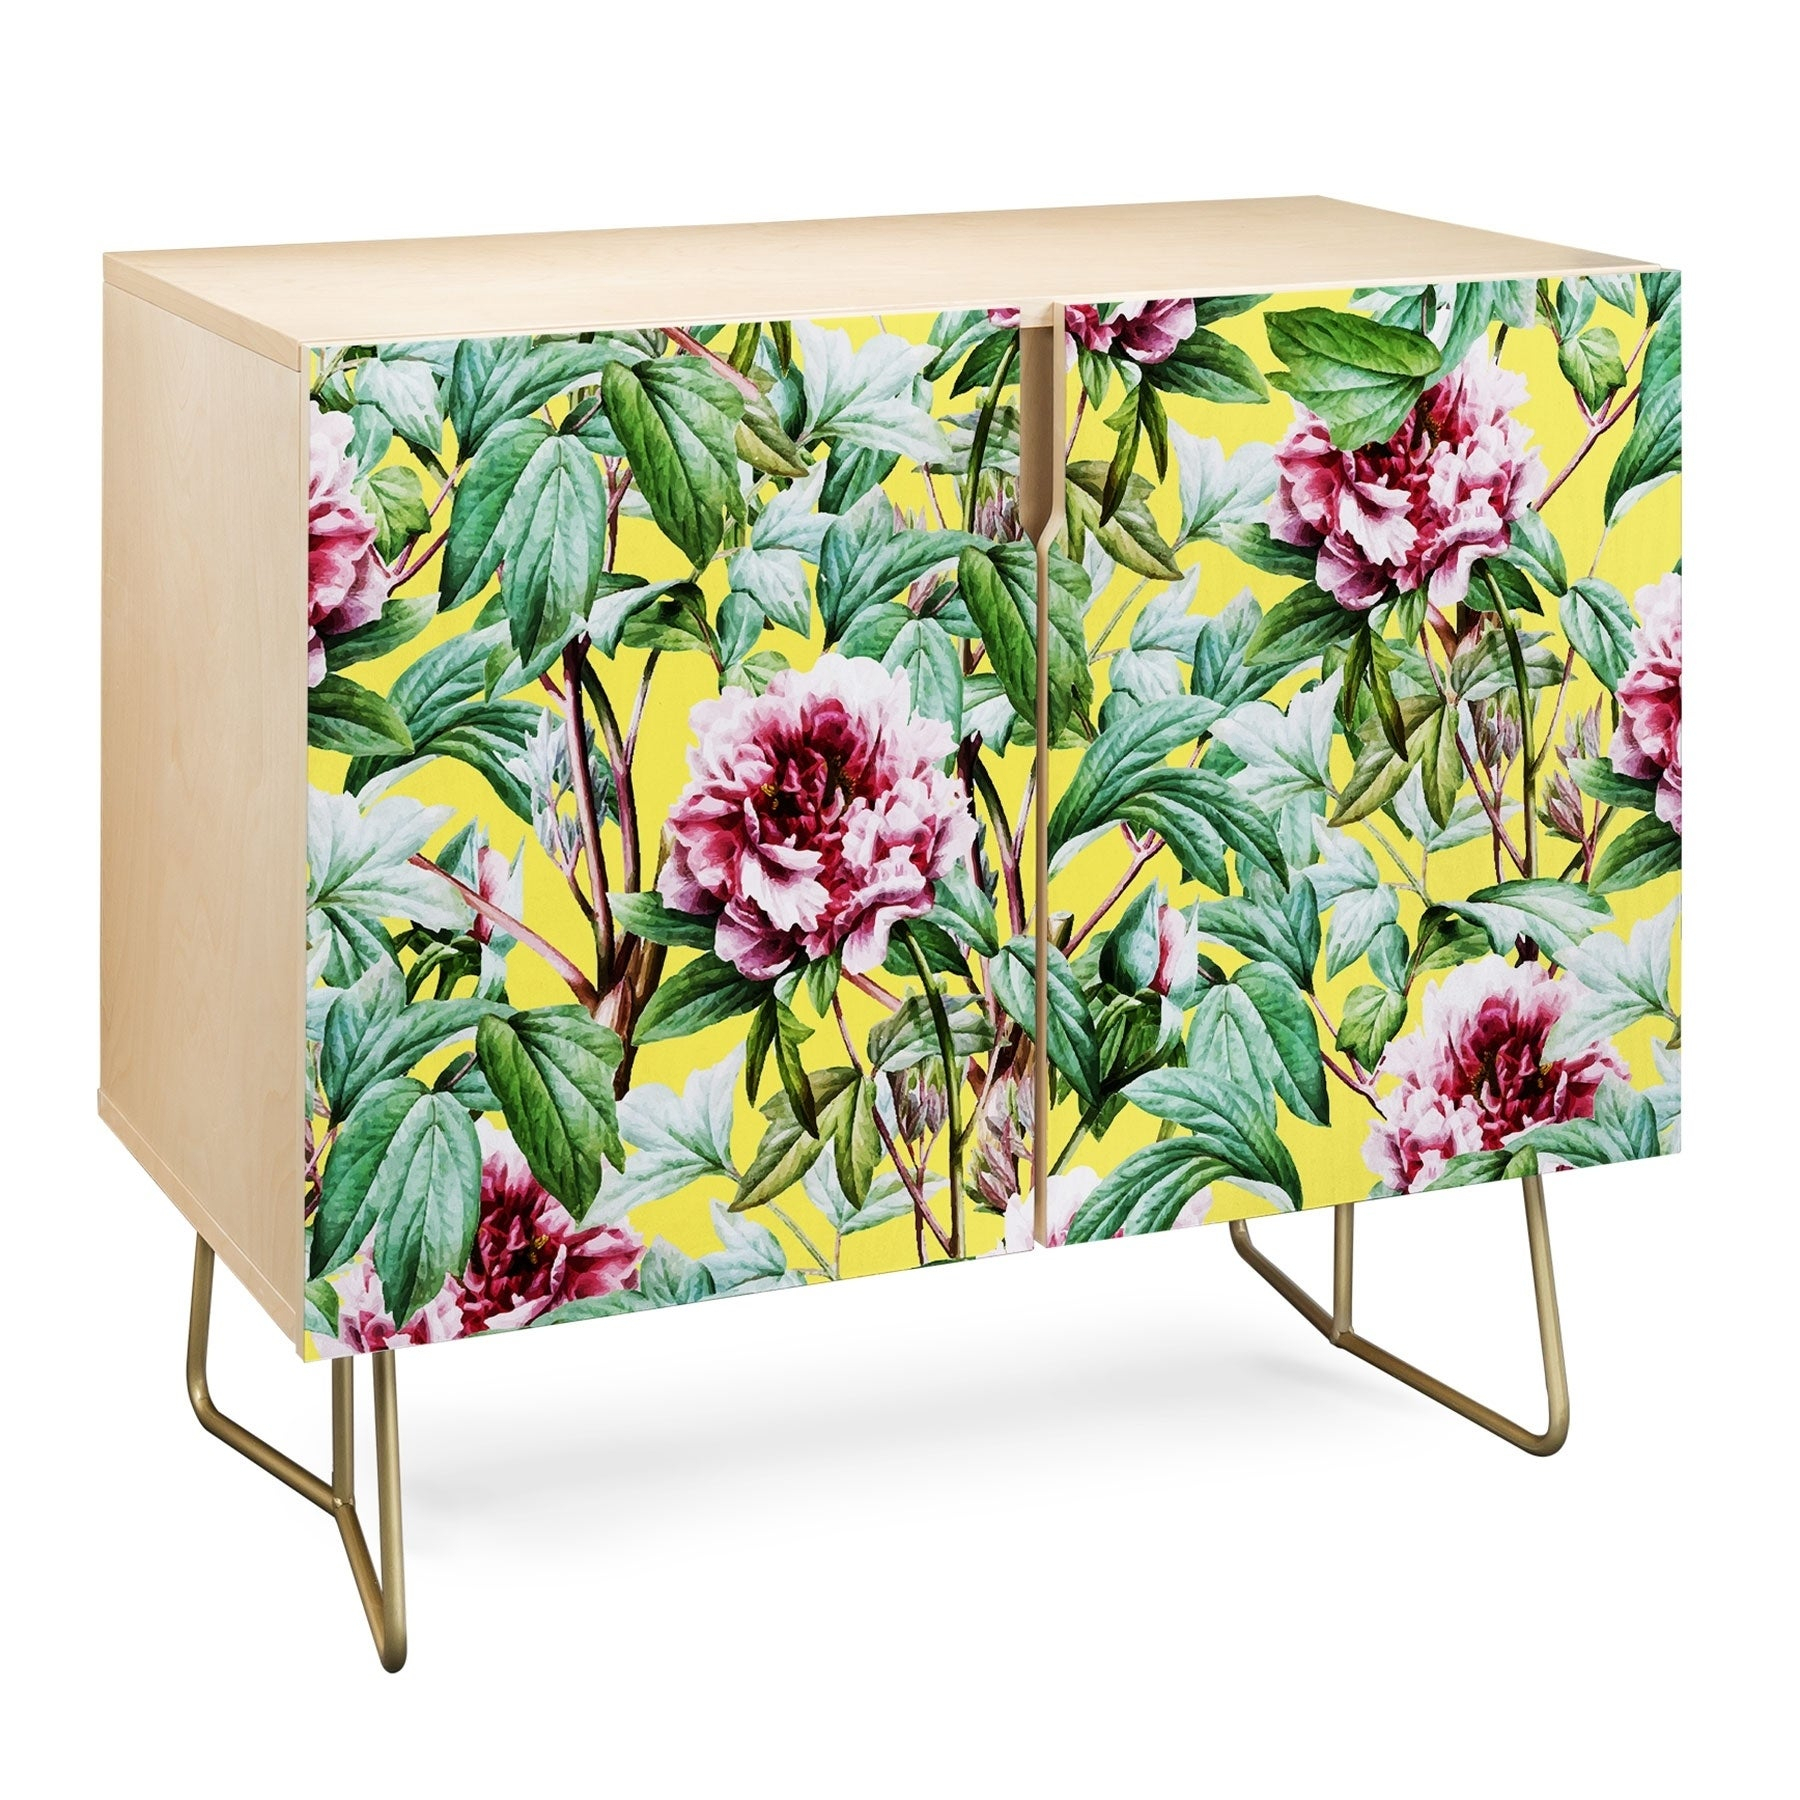 Deny Designs Yellow Flora Credenza (Birch Or Walnut, 2 Leg Options) Intended For Floral Blush Yellow Credenzas (Gallery 5 of 30)